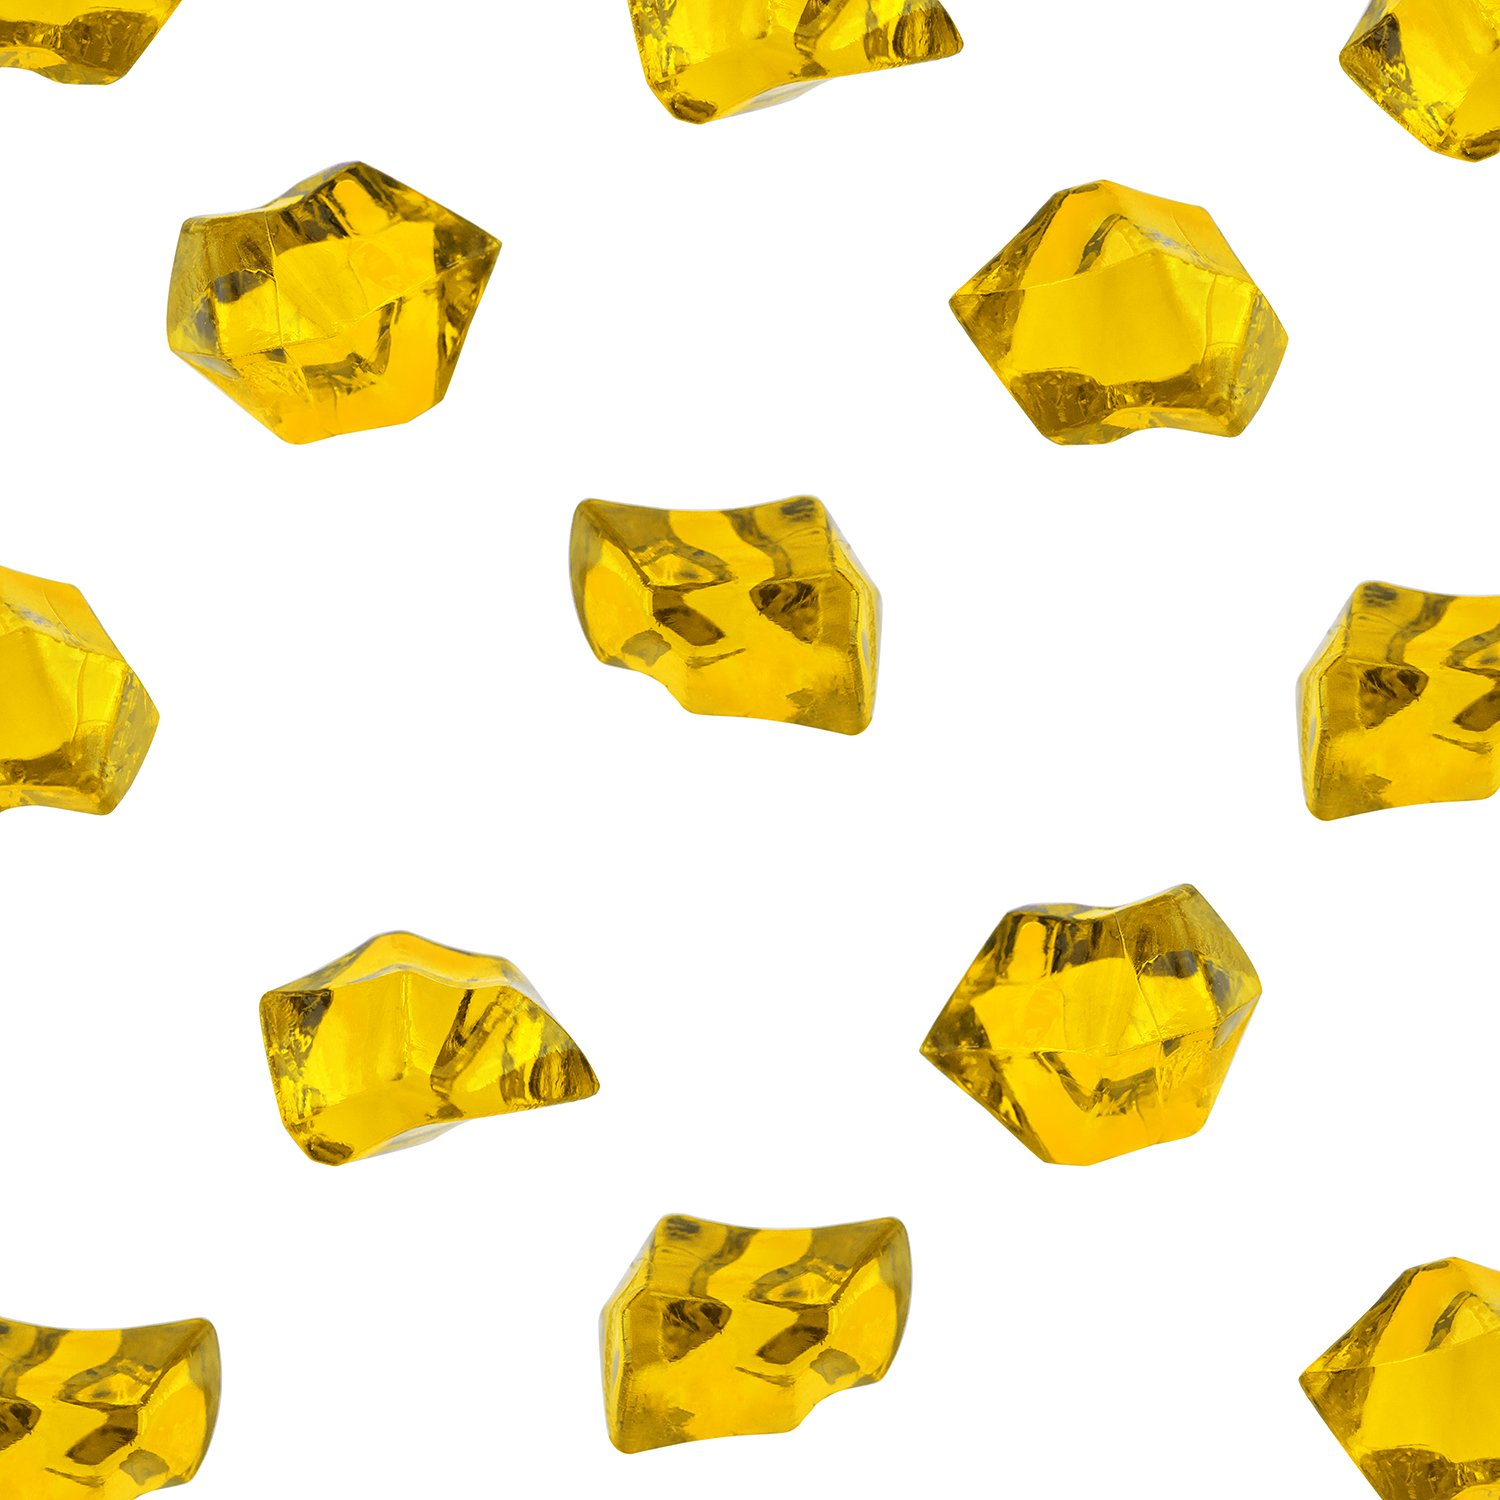 Super Z Outlet Acrylic Color Ice Rock Crystals Treasure Gems for Table Scatters, Vase Fillers, Event, Wedding, Birthday Decoration Favor, Arts & Crafts (385 Pieces) by (Yellow)